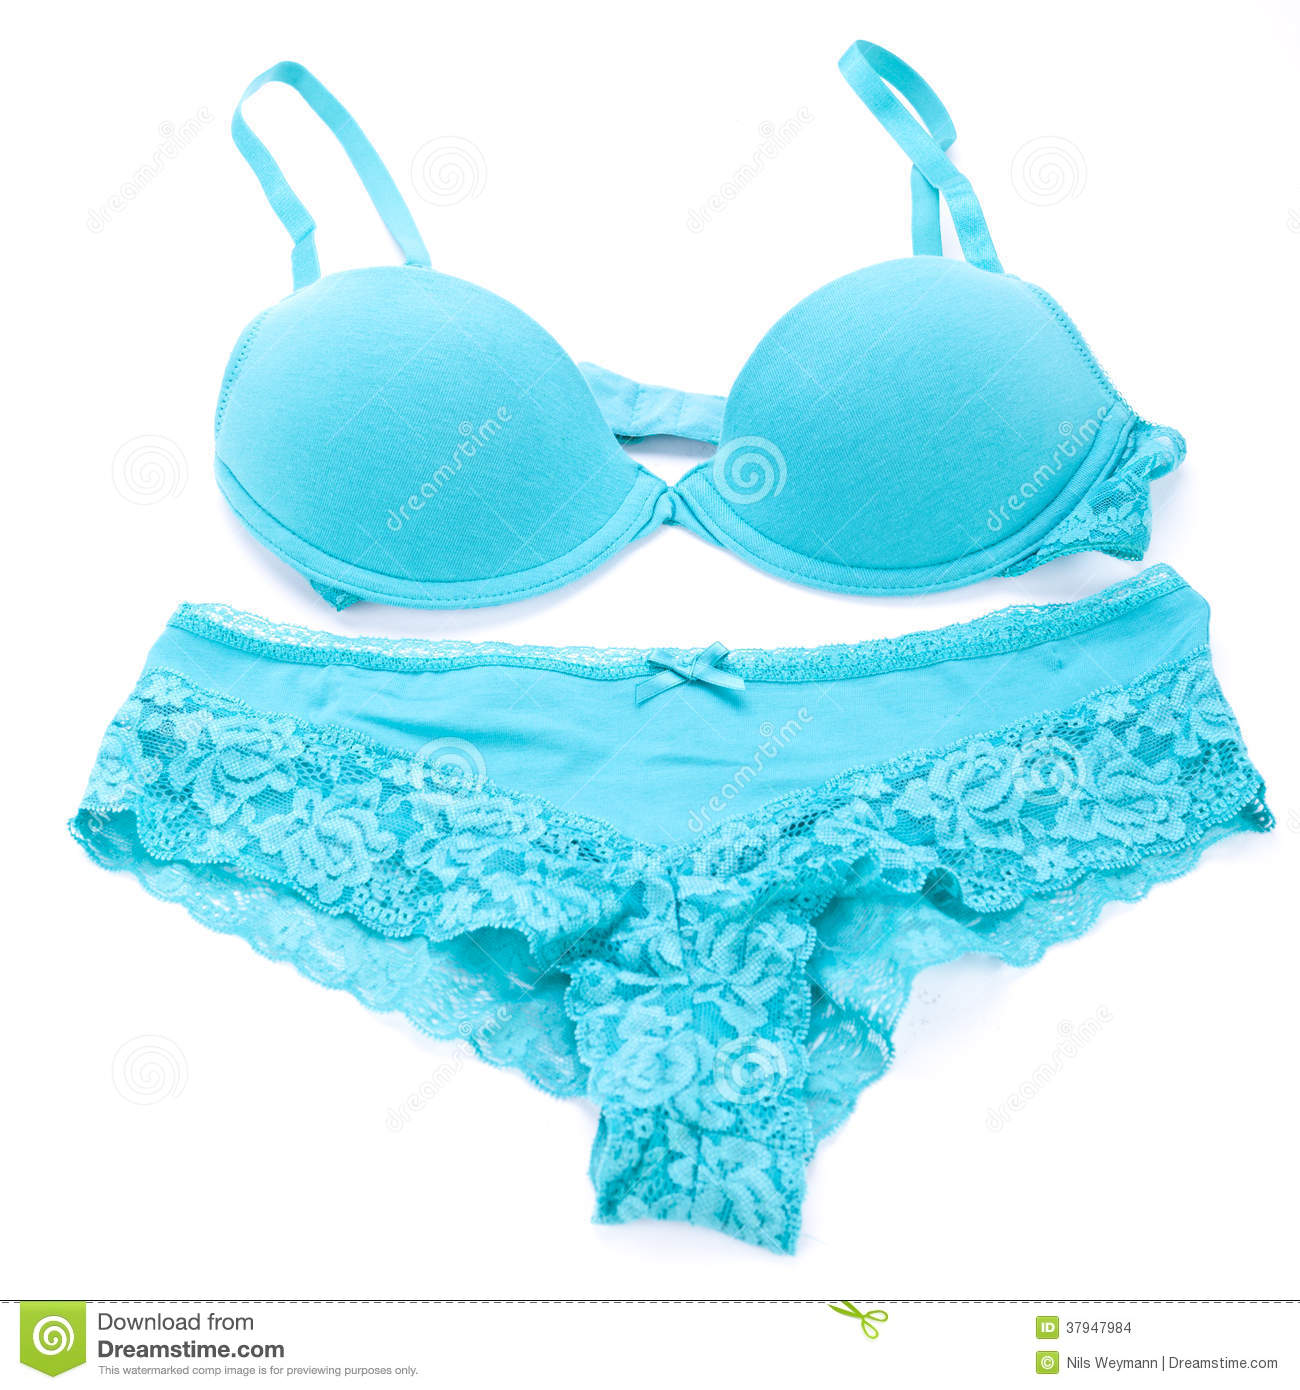 ensemble de lingerie sexy de bleu de turquoise images stock image 37947984. Black Bedroom Furniture Sets. Home Design Ideas